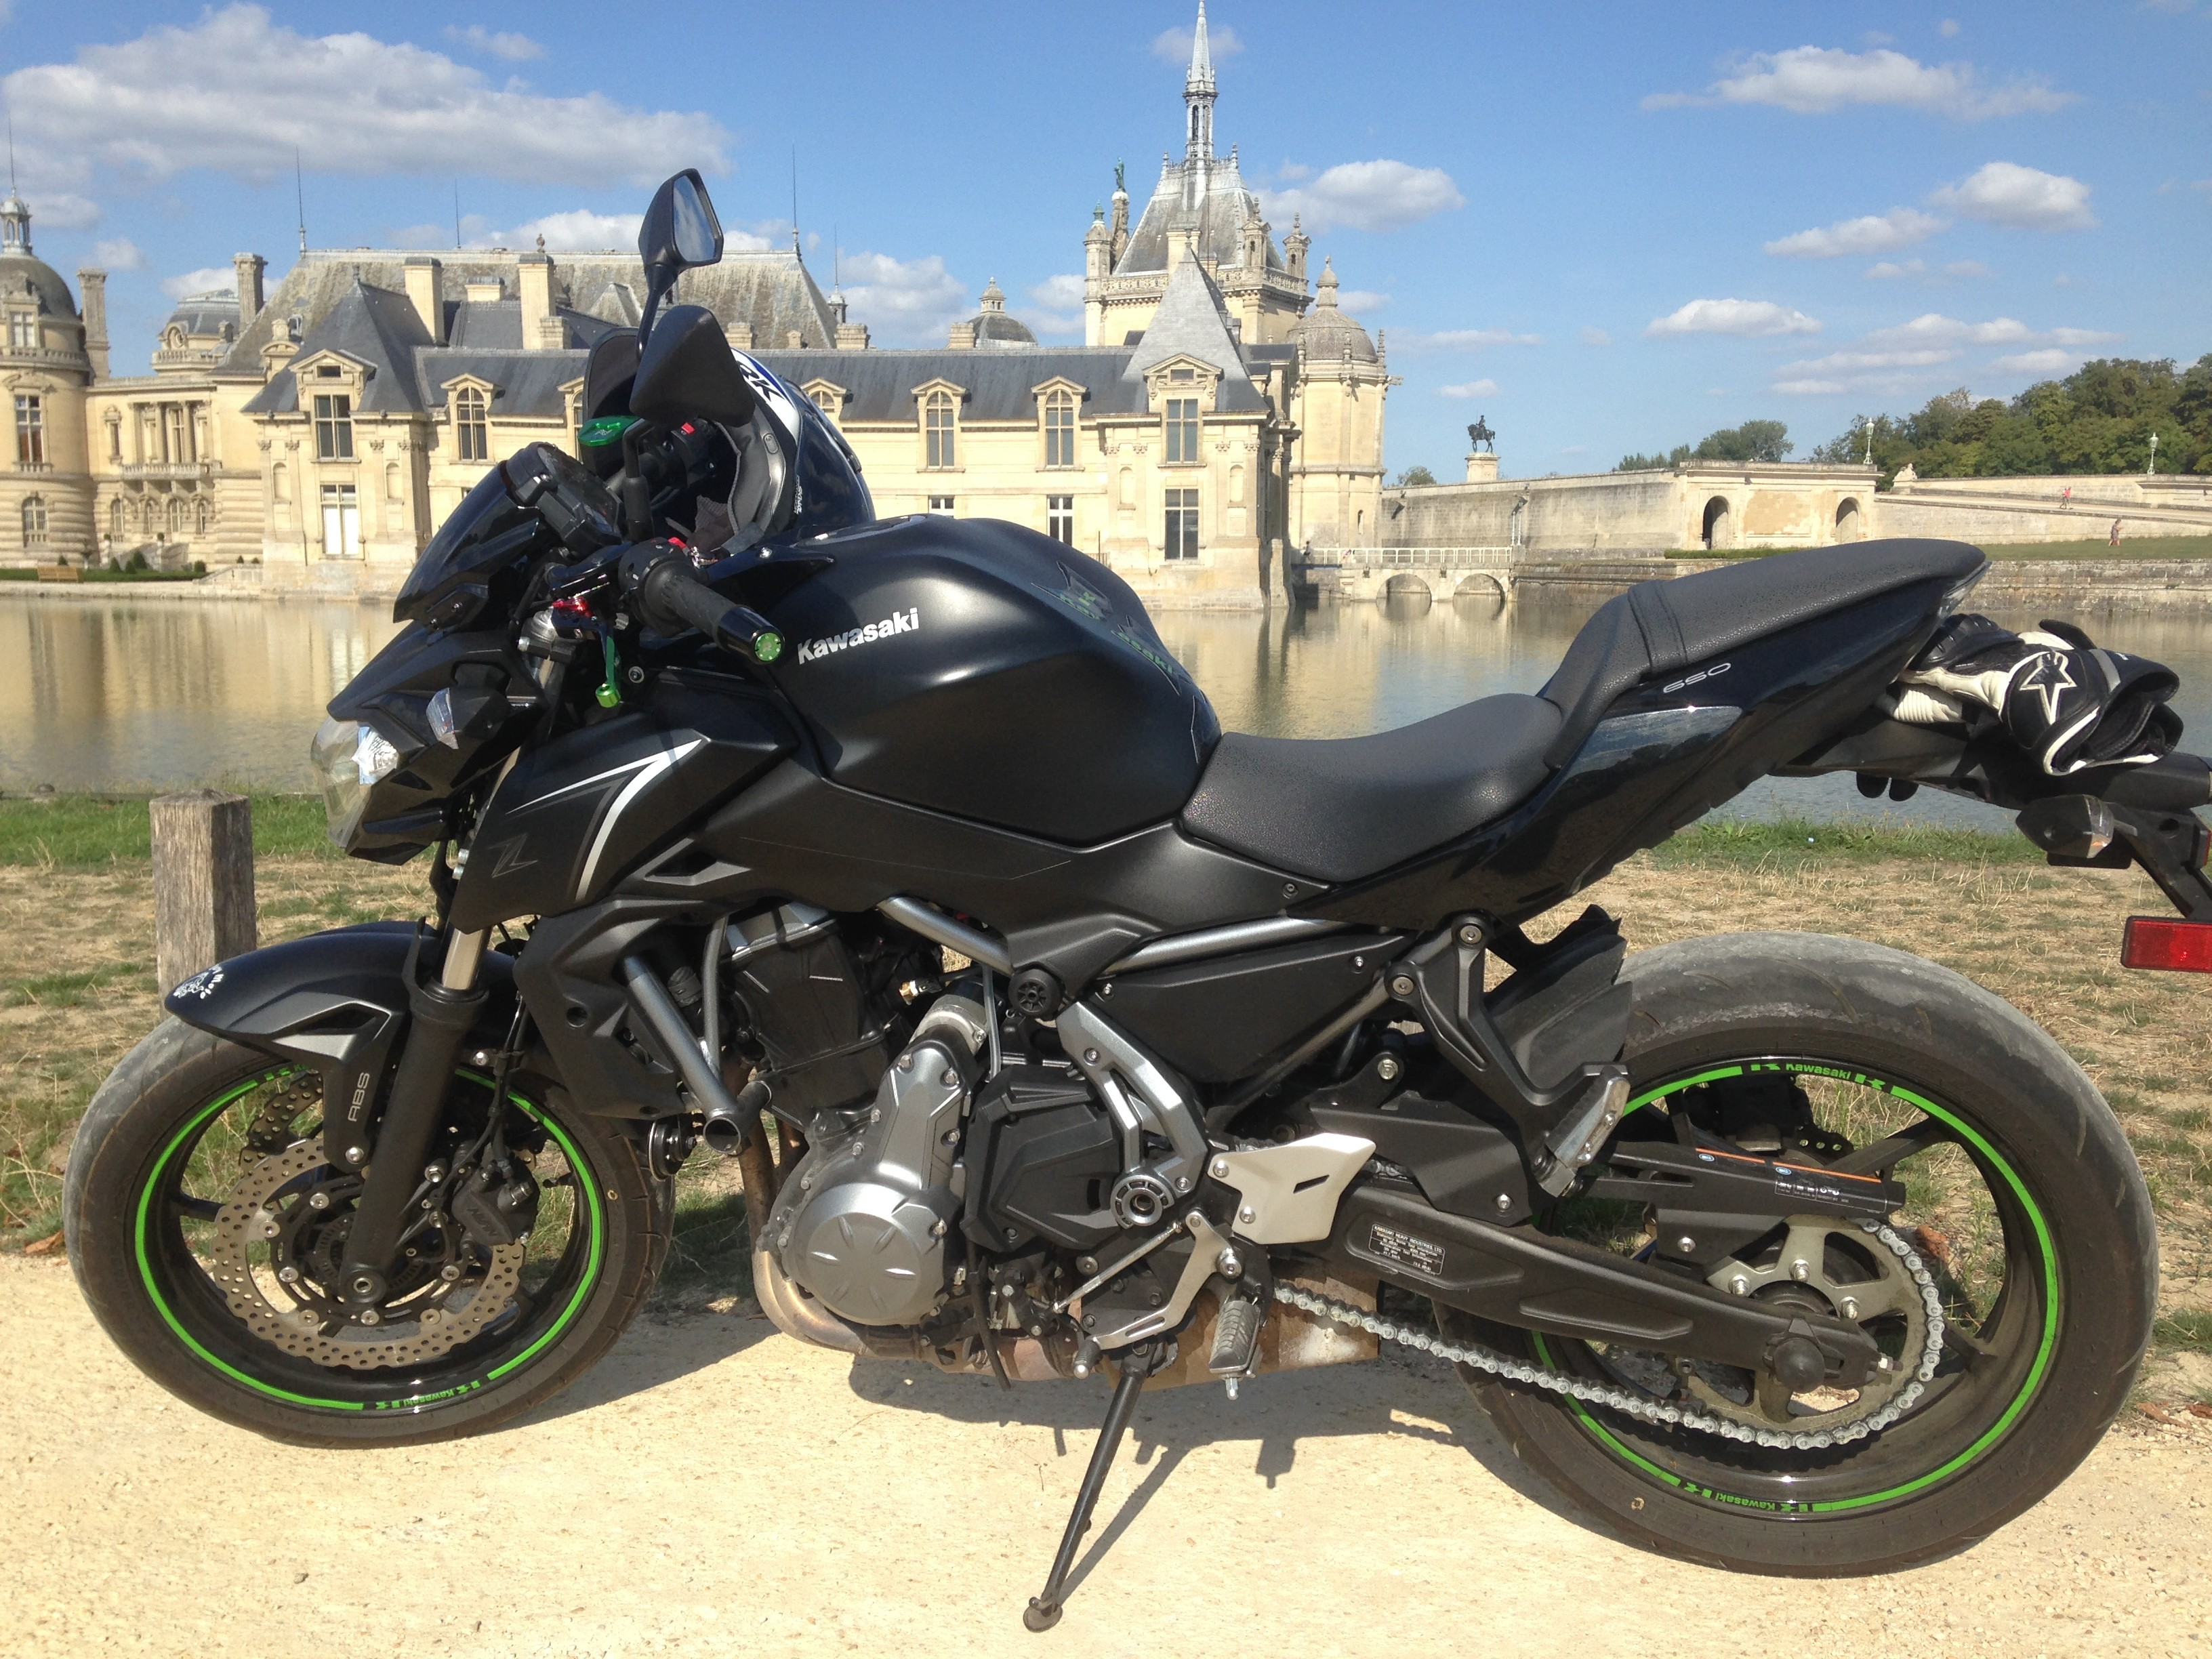 Z650 location chantilly oise